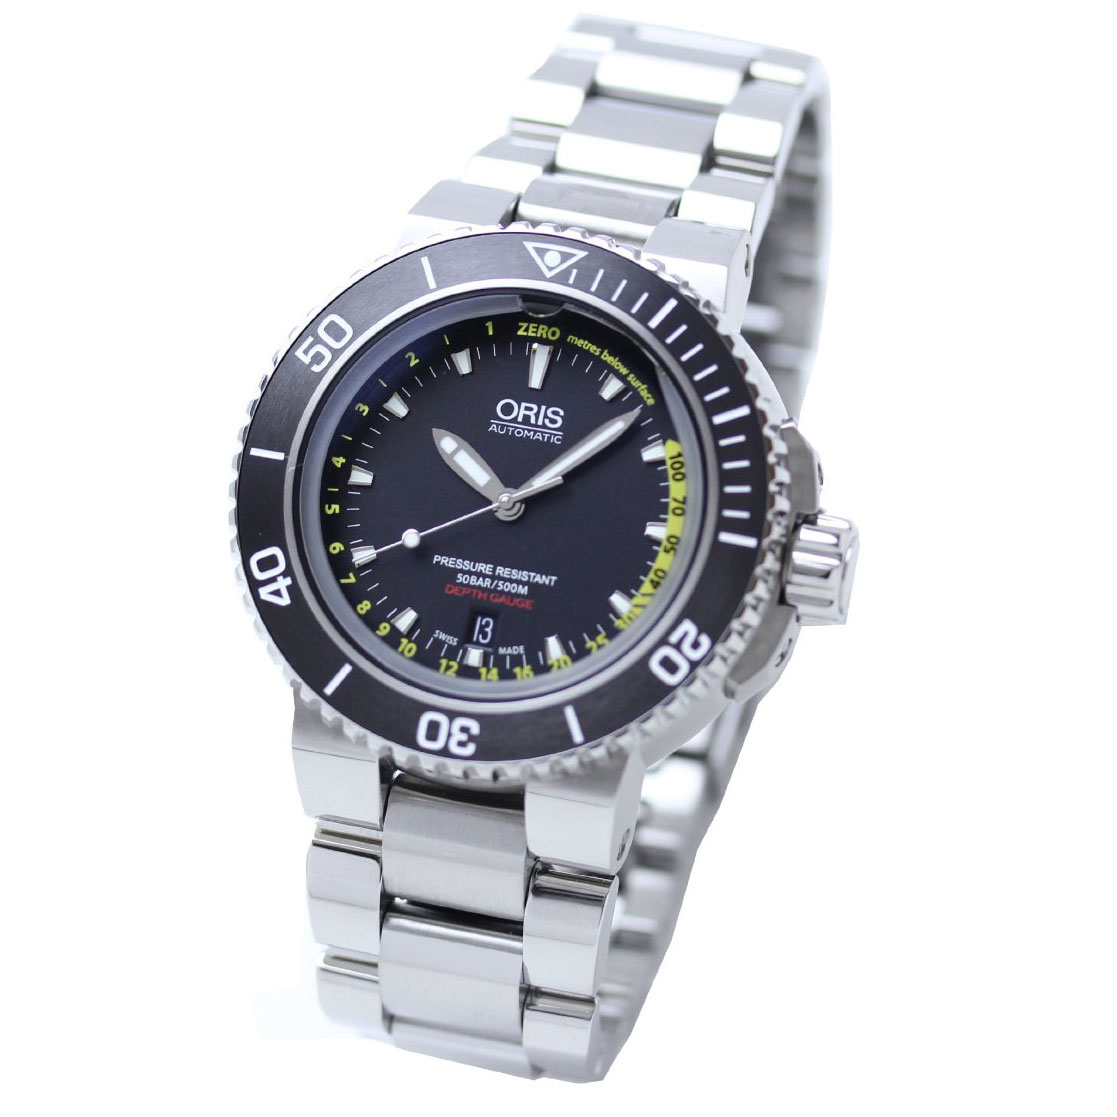 watches before in oris image category amj background try store purchase